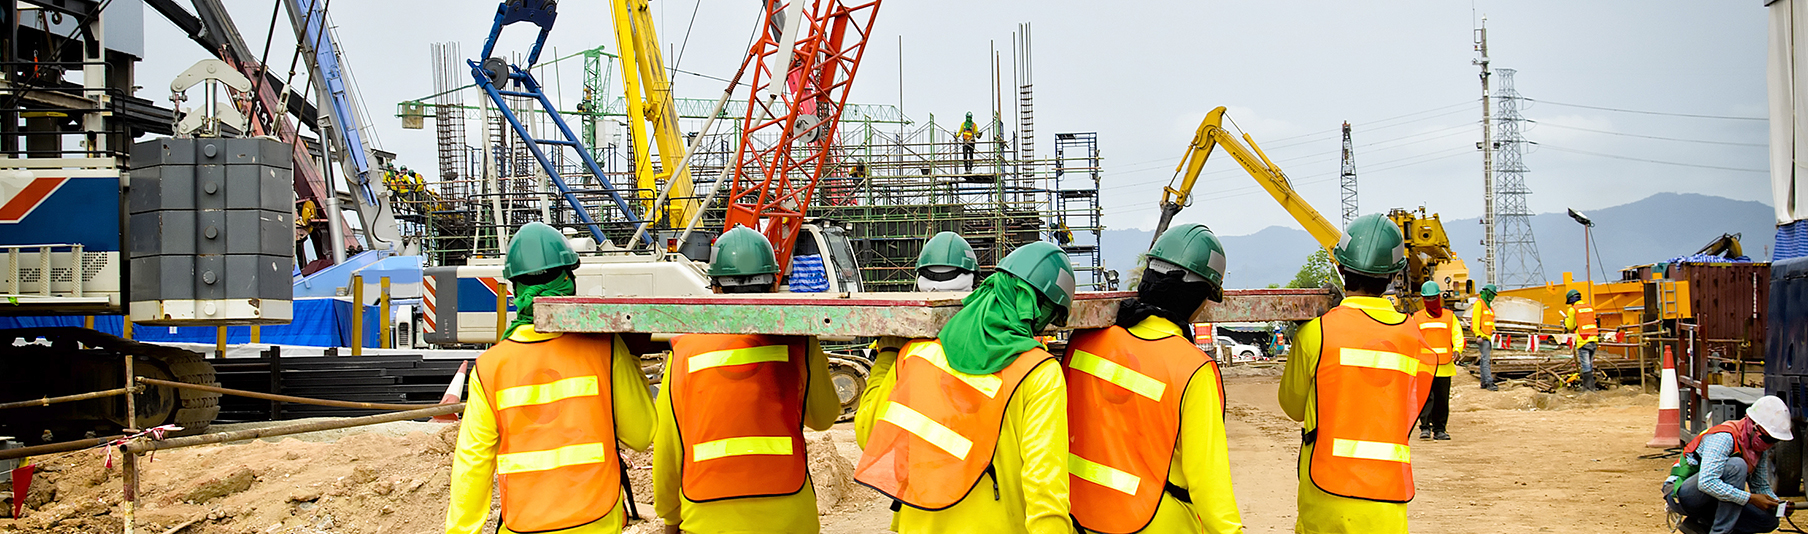 Construction Insurance: Builders lifting something together on a worksite